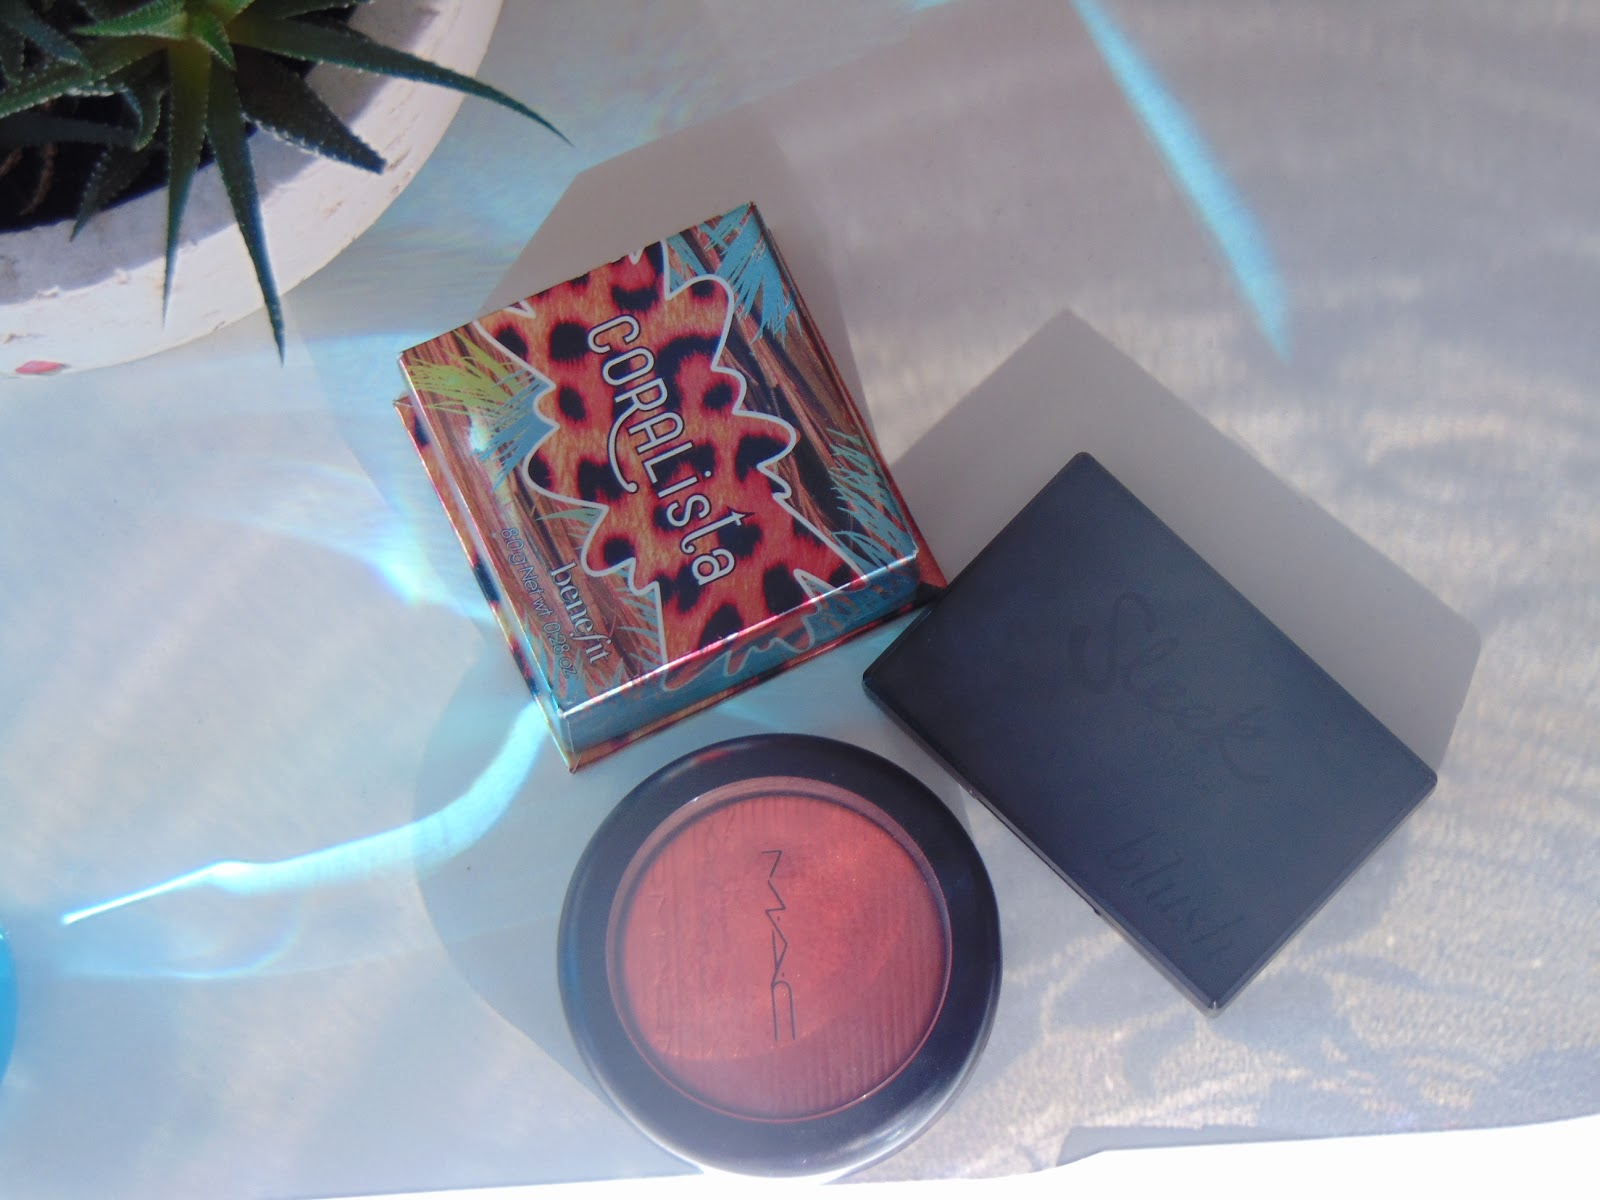 benefit coralista mac extra dimension cheeky bits sleek rose gold blush